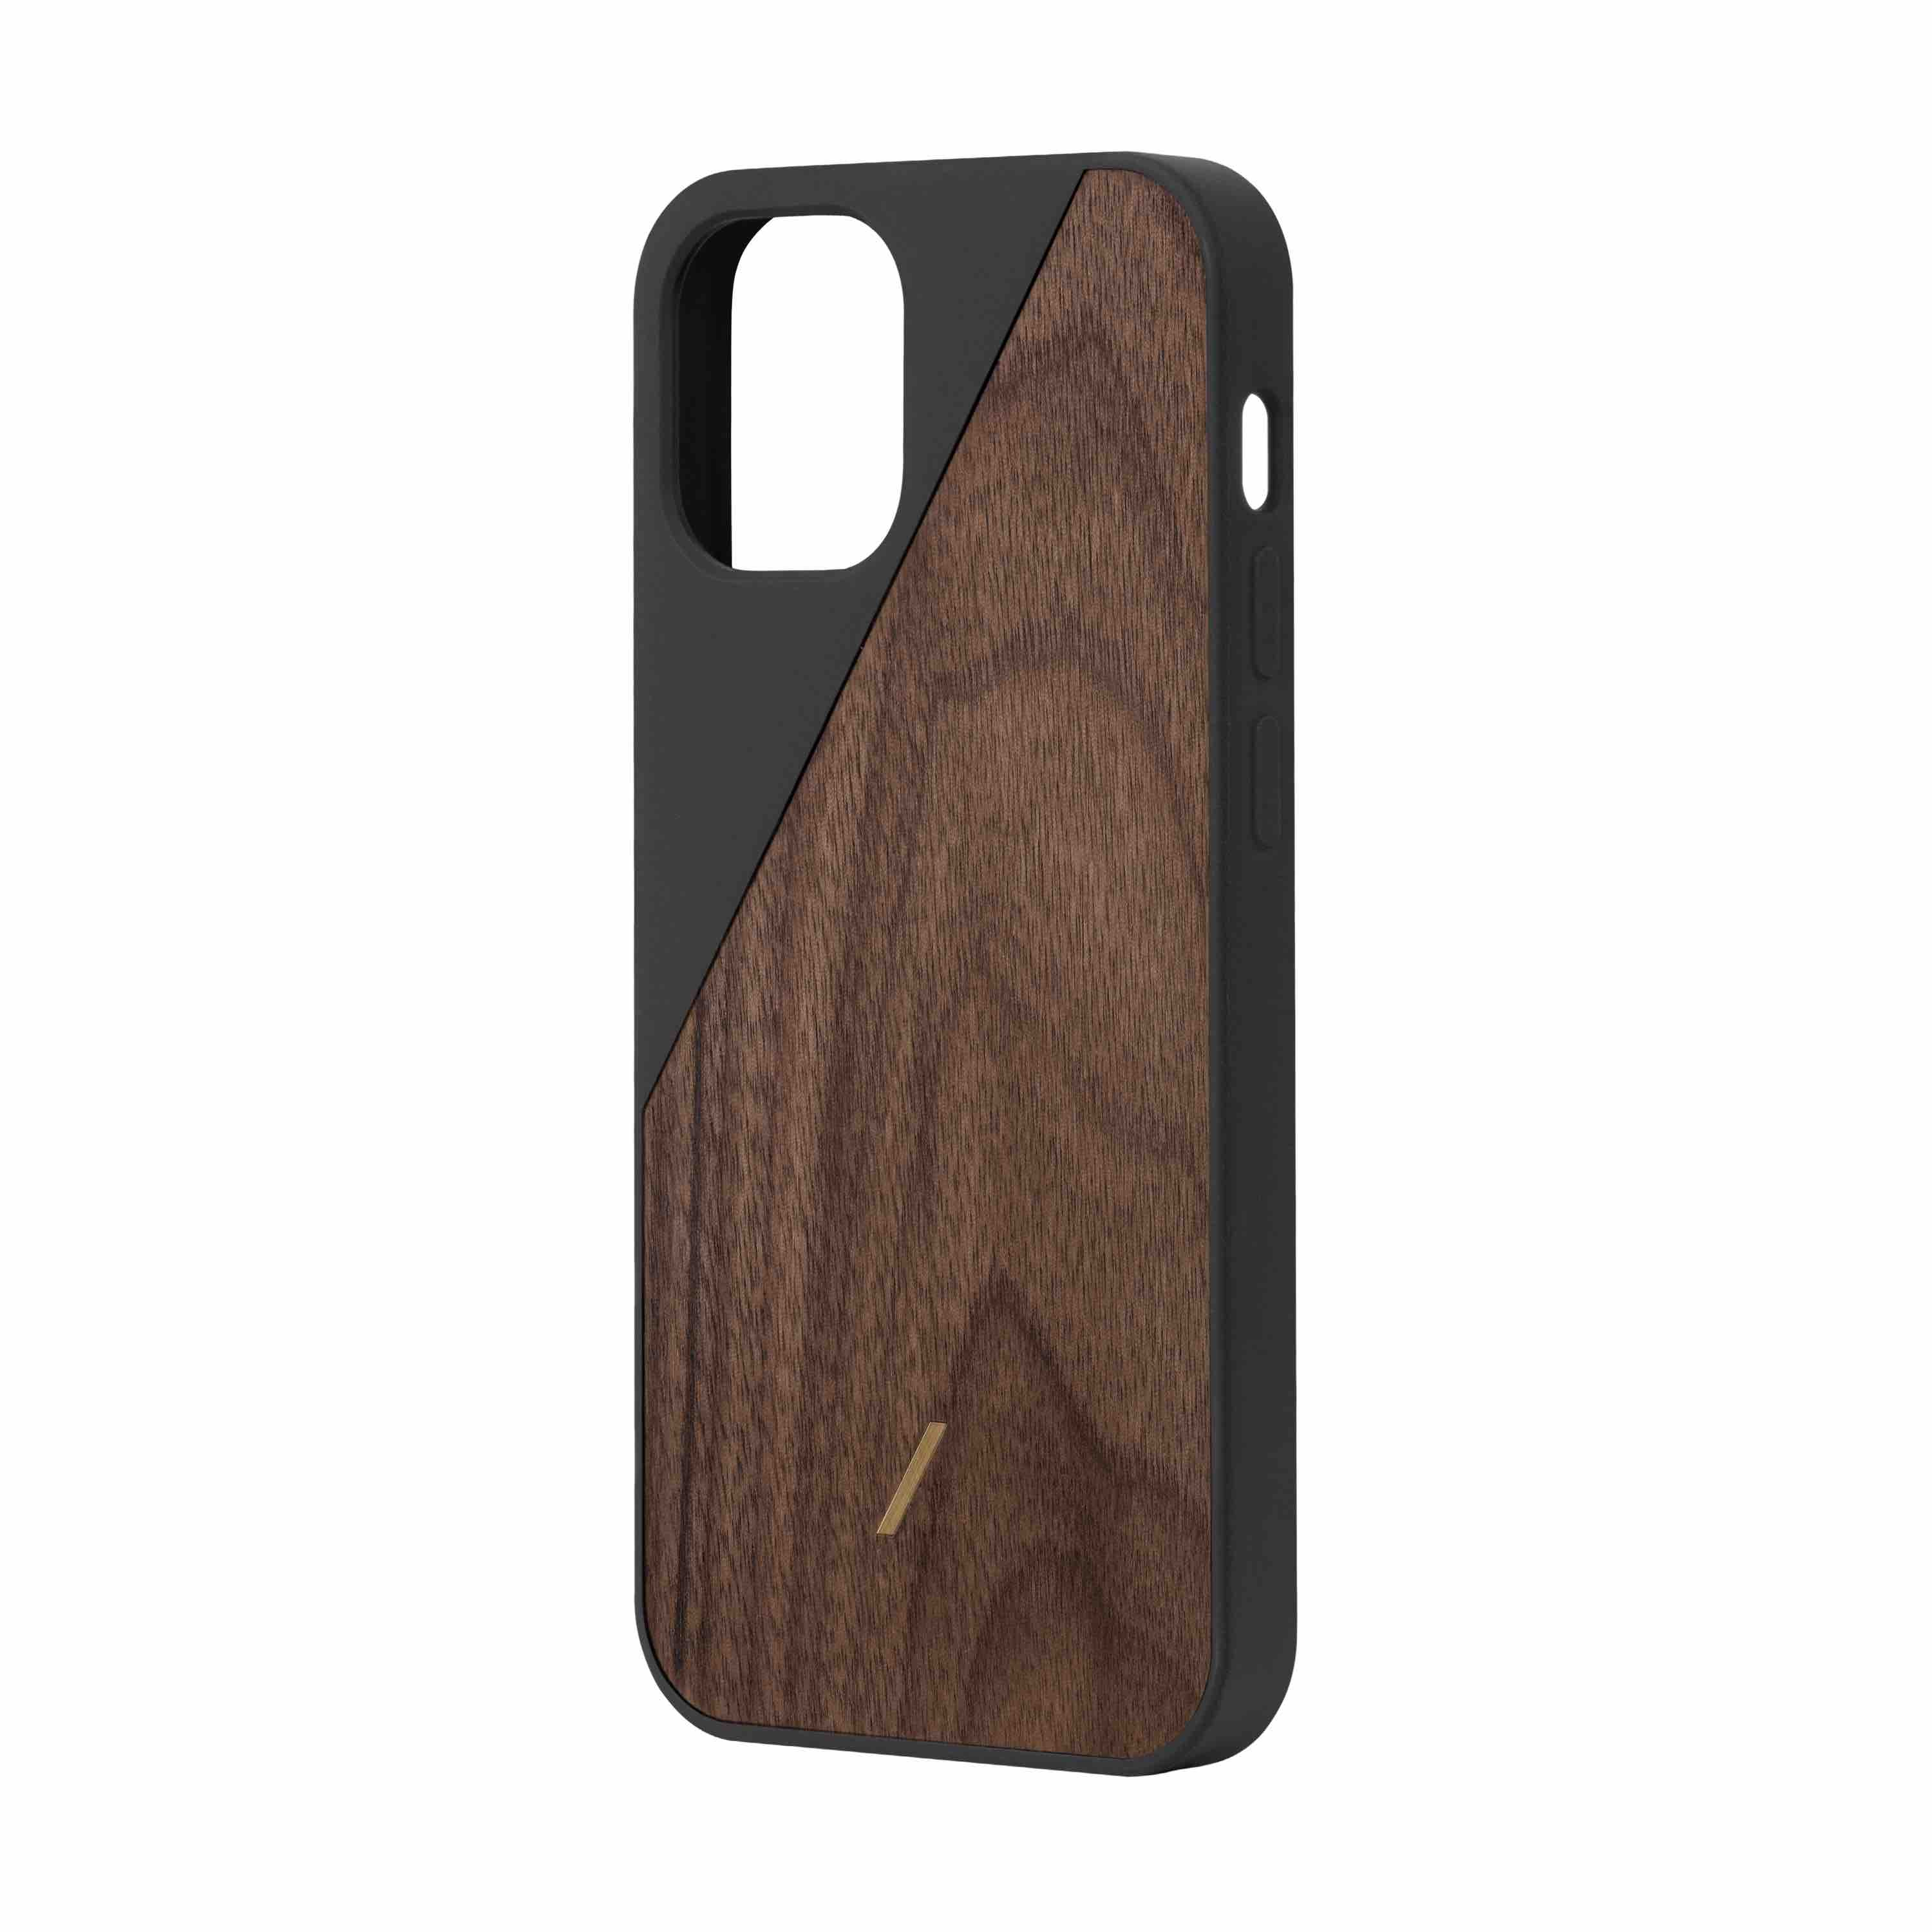 Native Union iPhone 12 Pro Max Clic Wooden Case